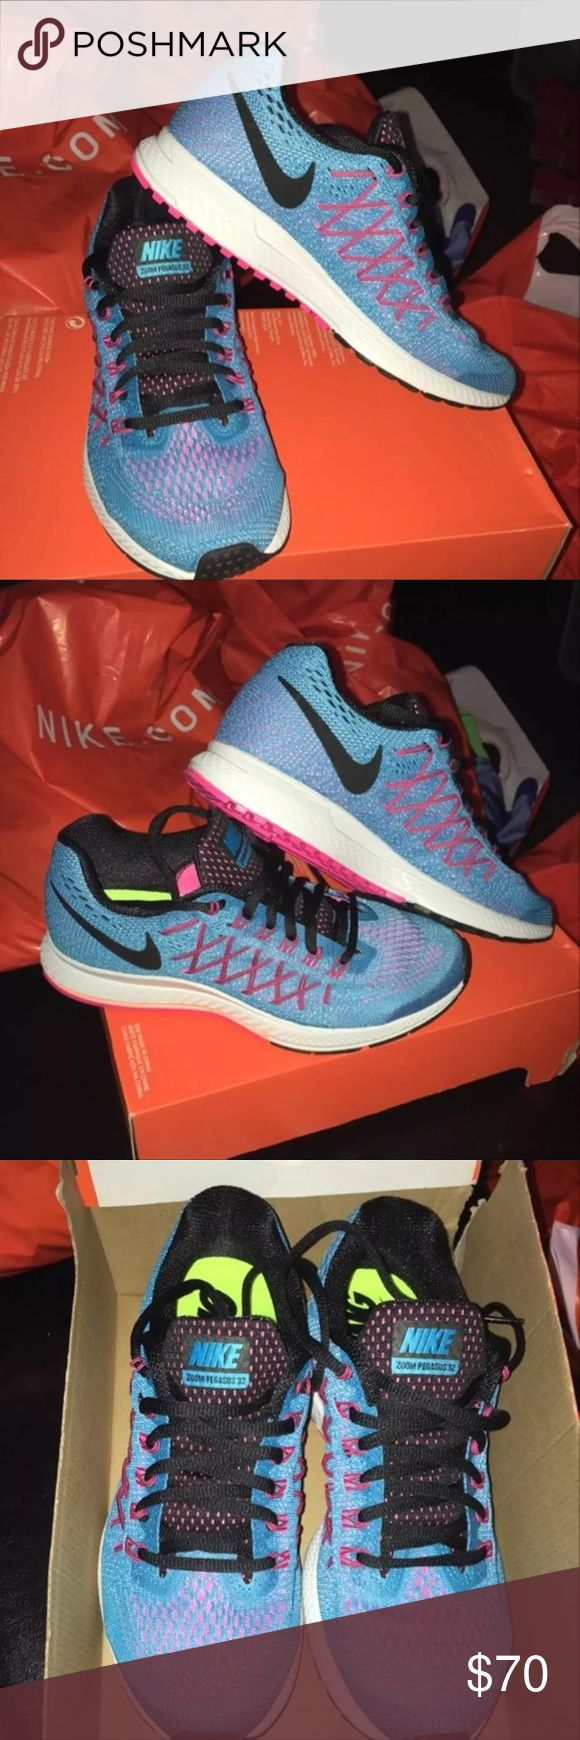 New Nike Air Zoom Sneakers $120 ladies7.5 Brand new in box. This is lowest price. Nike Shoes Athletic Shoes